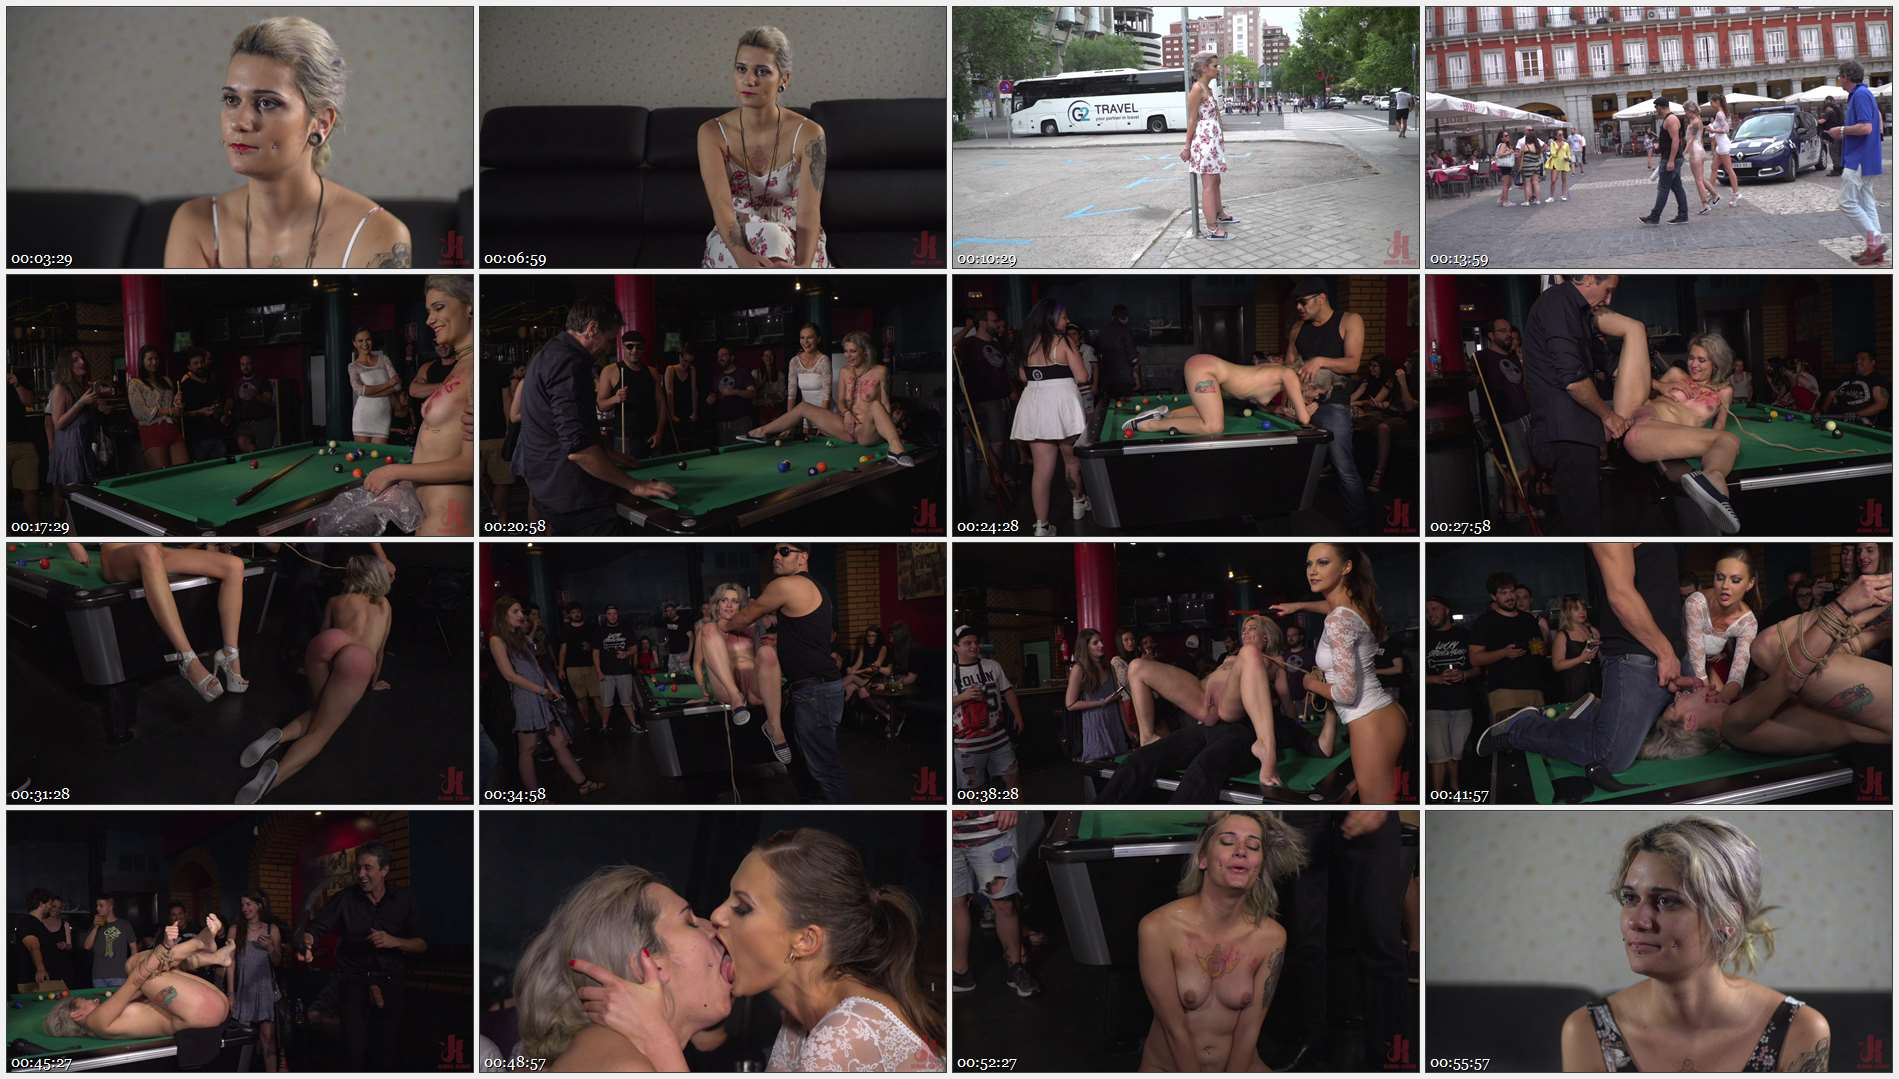 Steve Holmes – Antonio Ross – Tina Kay – Yunno X – Attention Whore Yunno X Humilated, Punished, and Gang Fucked in Public